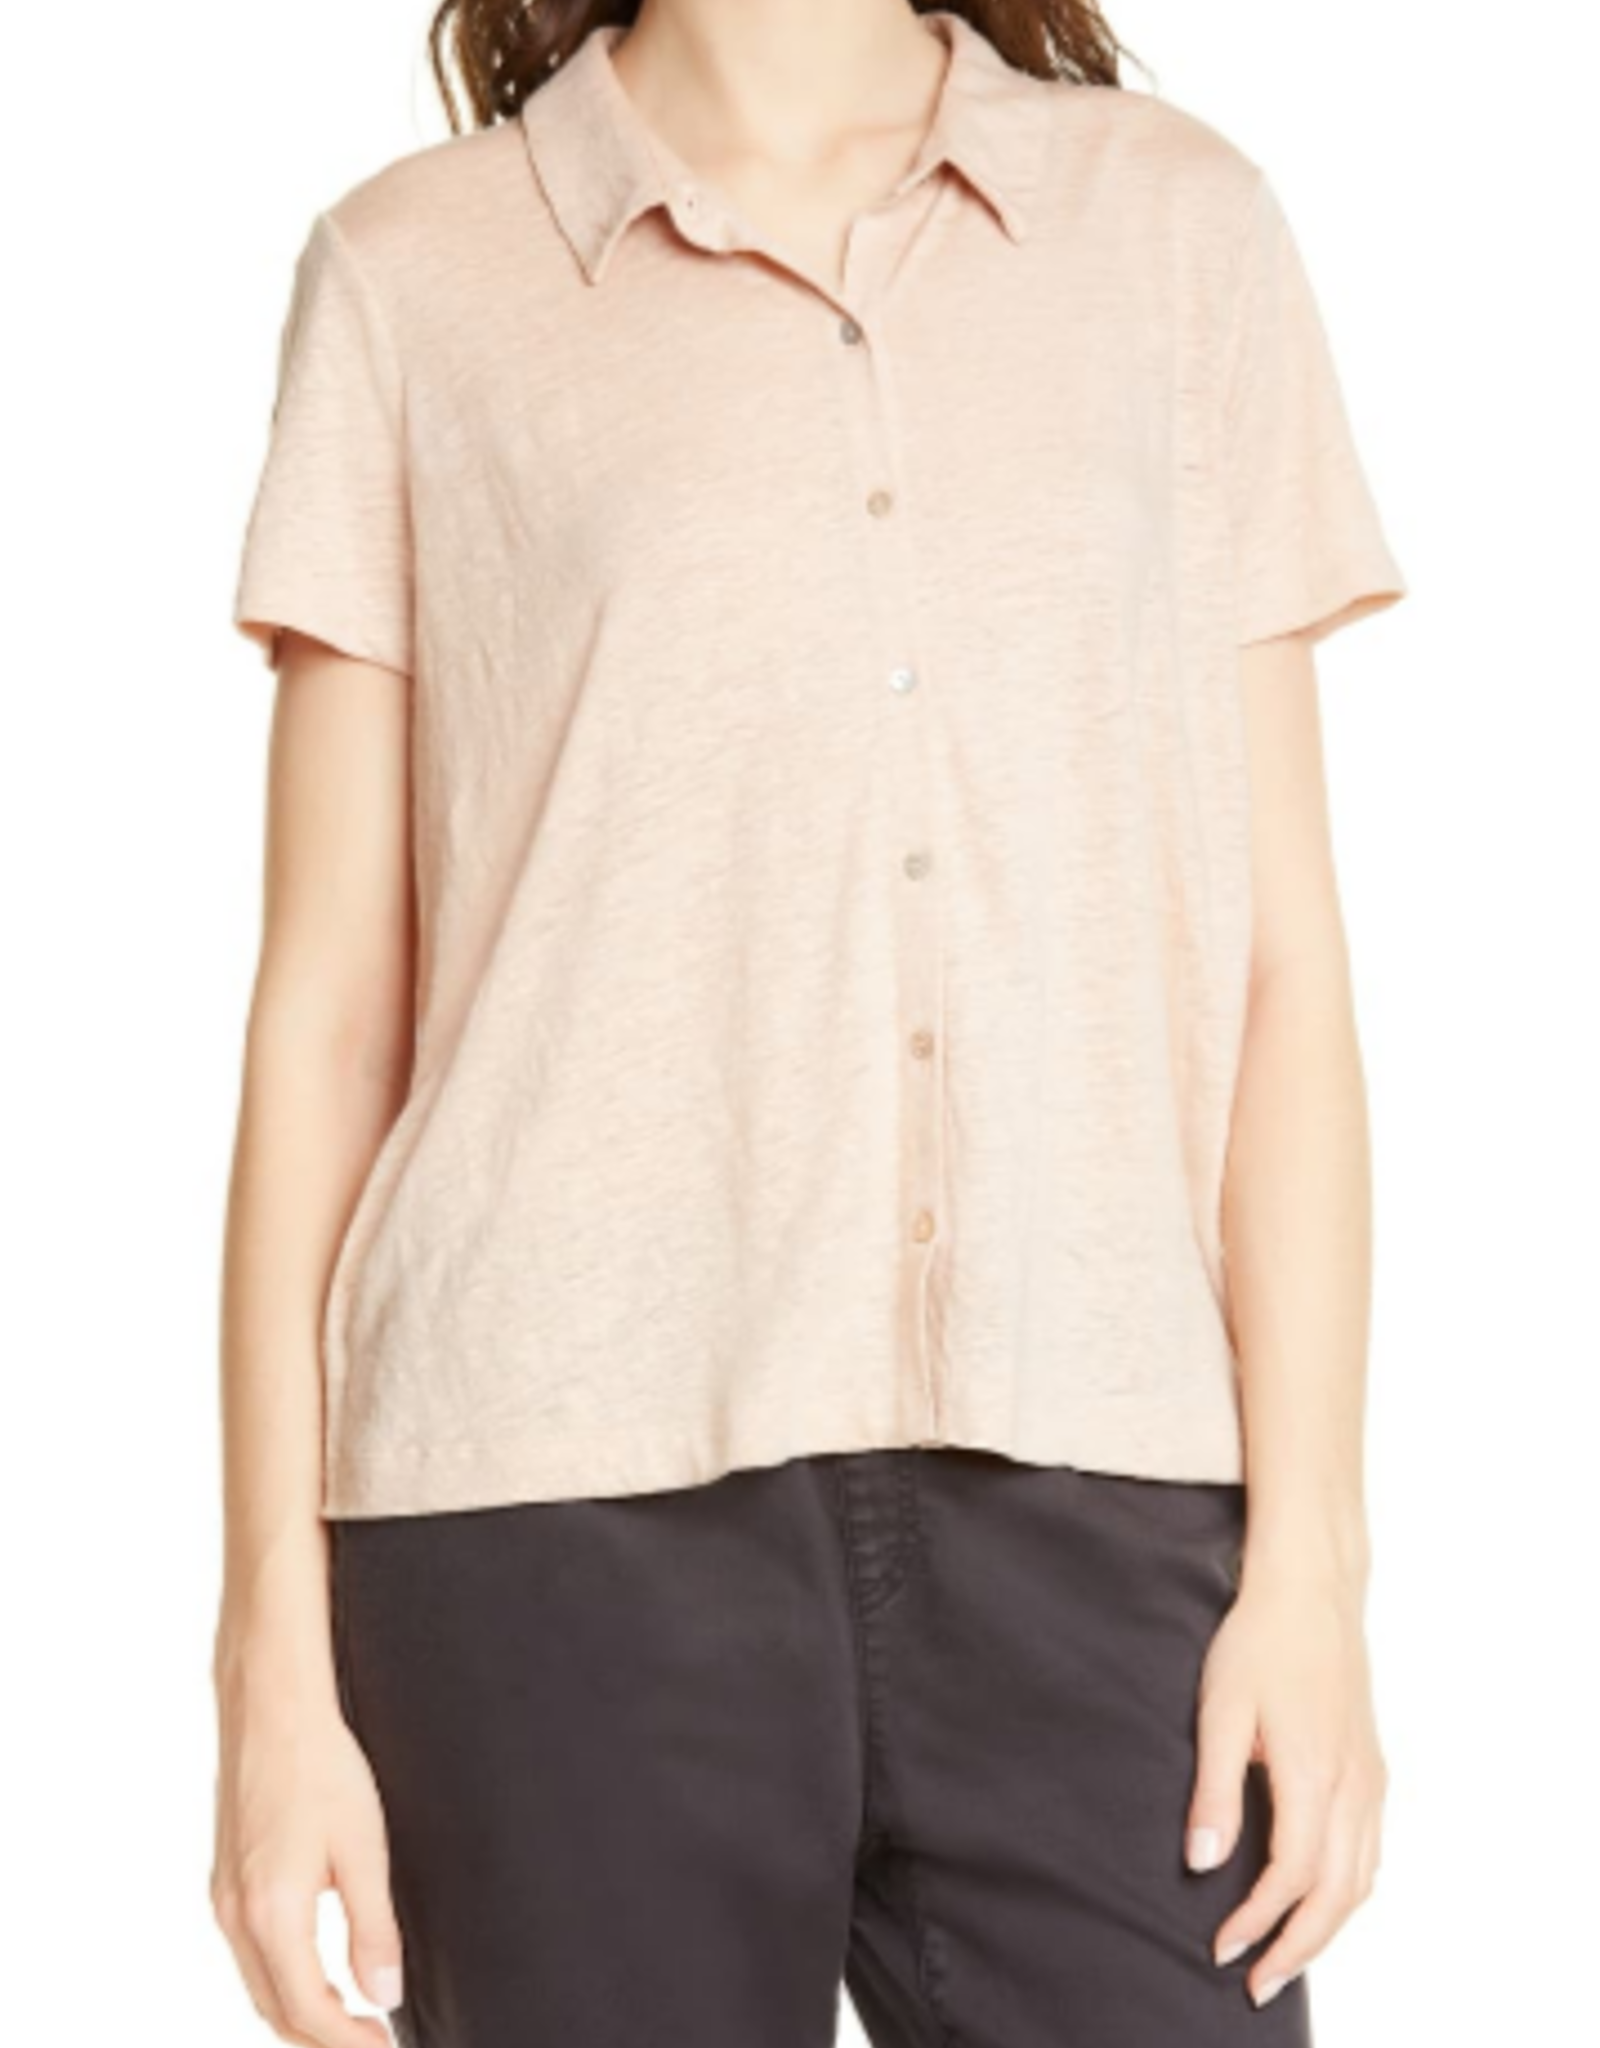 Eileen Fisher Eileen Fisher S/S Button Up Blouse Sz L